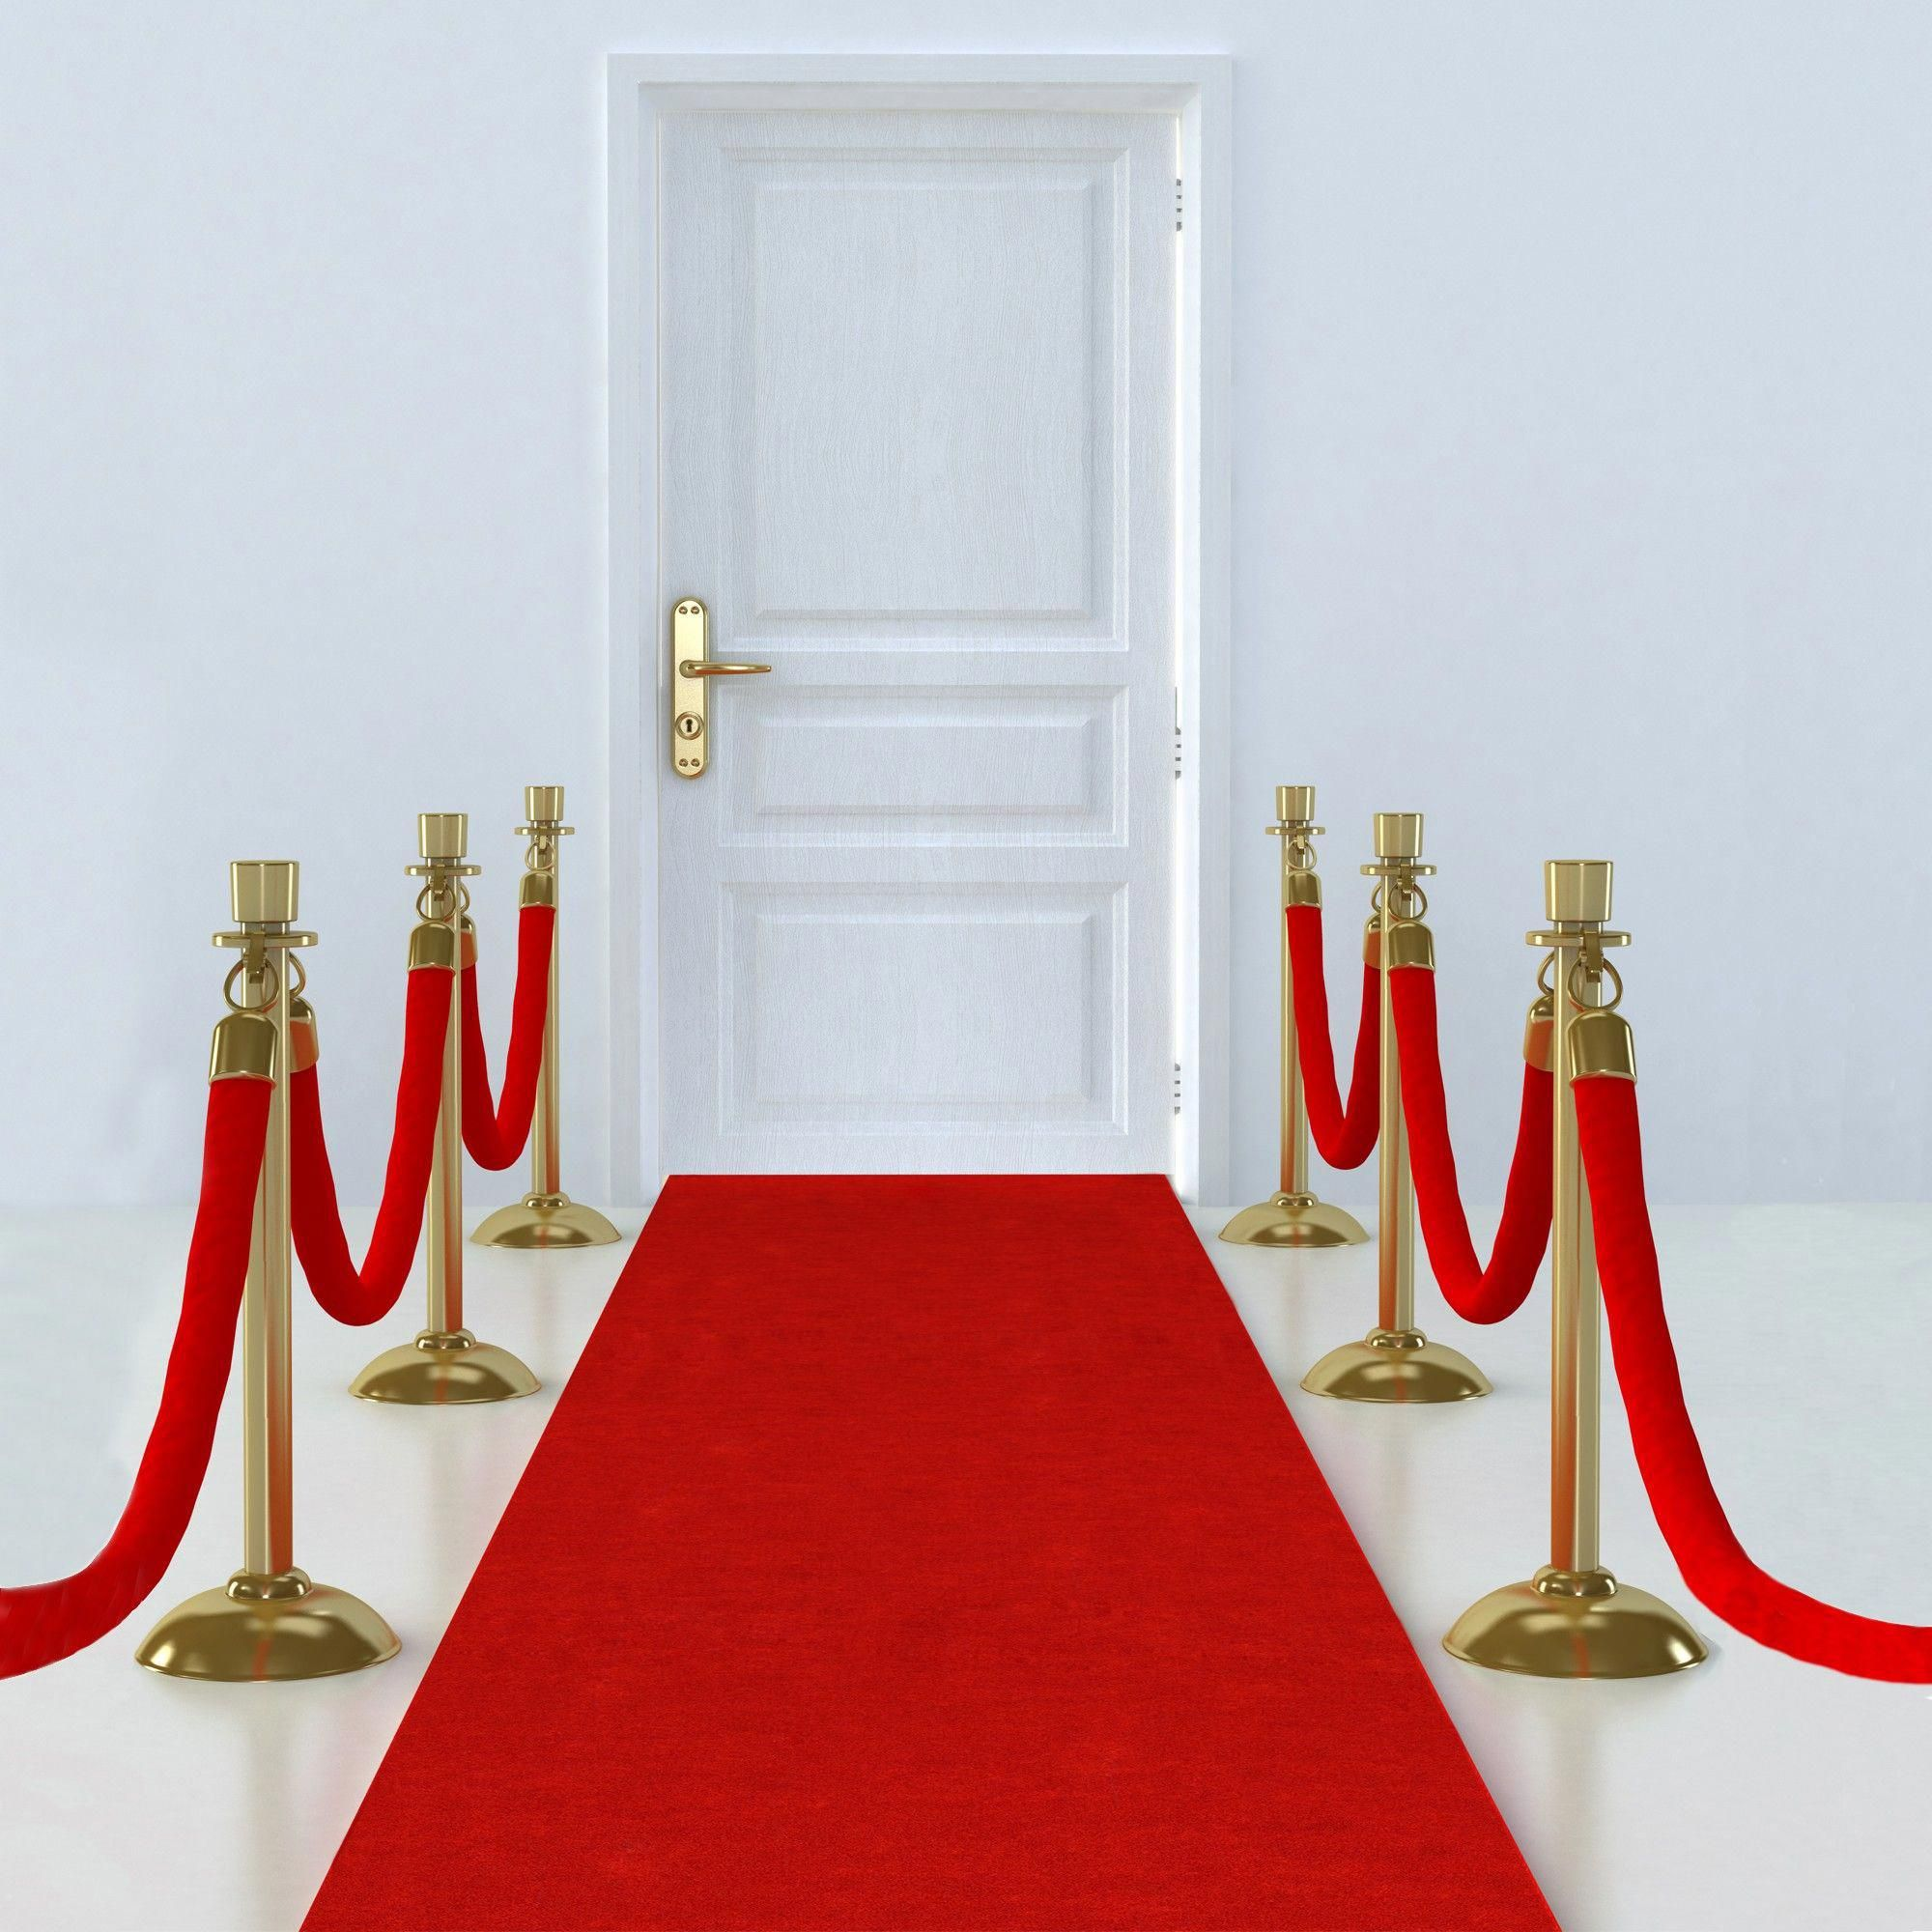 Give Your Guests A Taste Of Hollywood With Our Red Carpet Runner For Parties And Events Windy City Novelties Long Carpet Sale Carpet Runner Hollywood Red Carpet